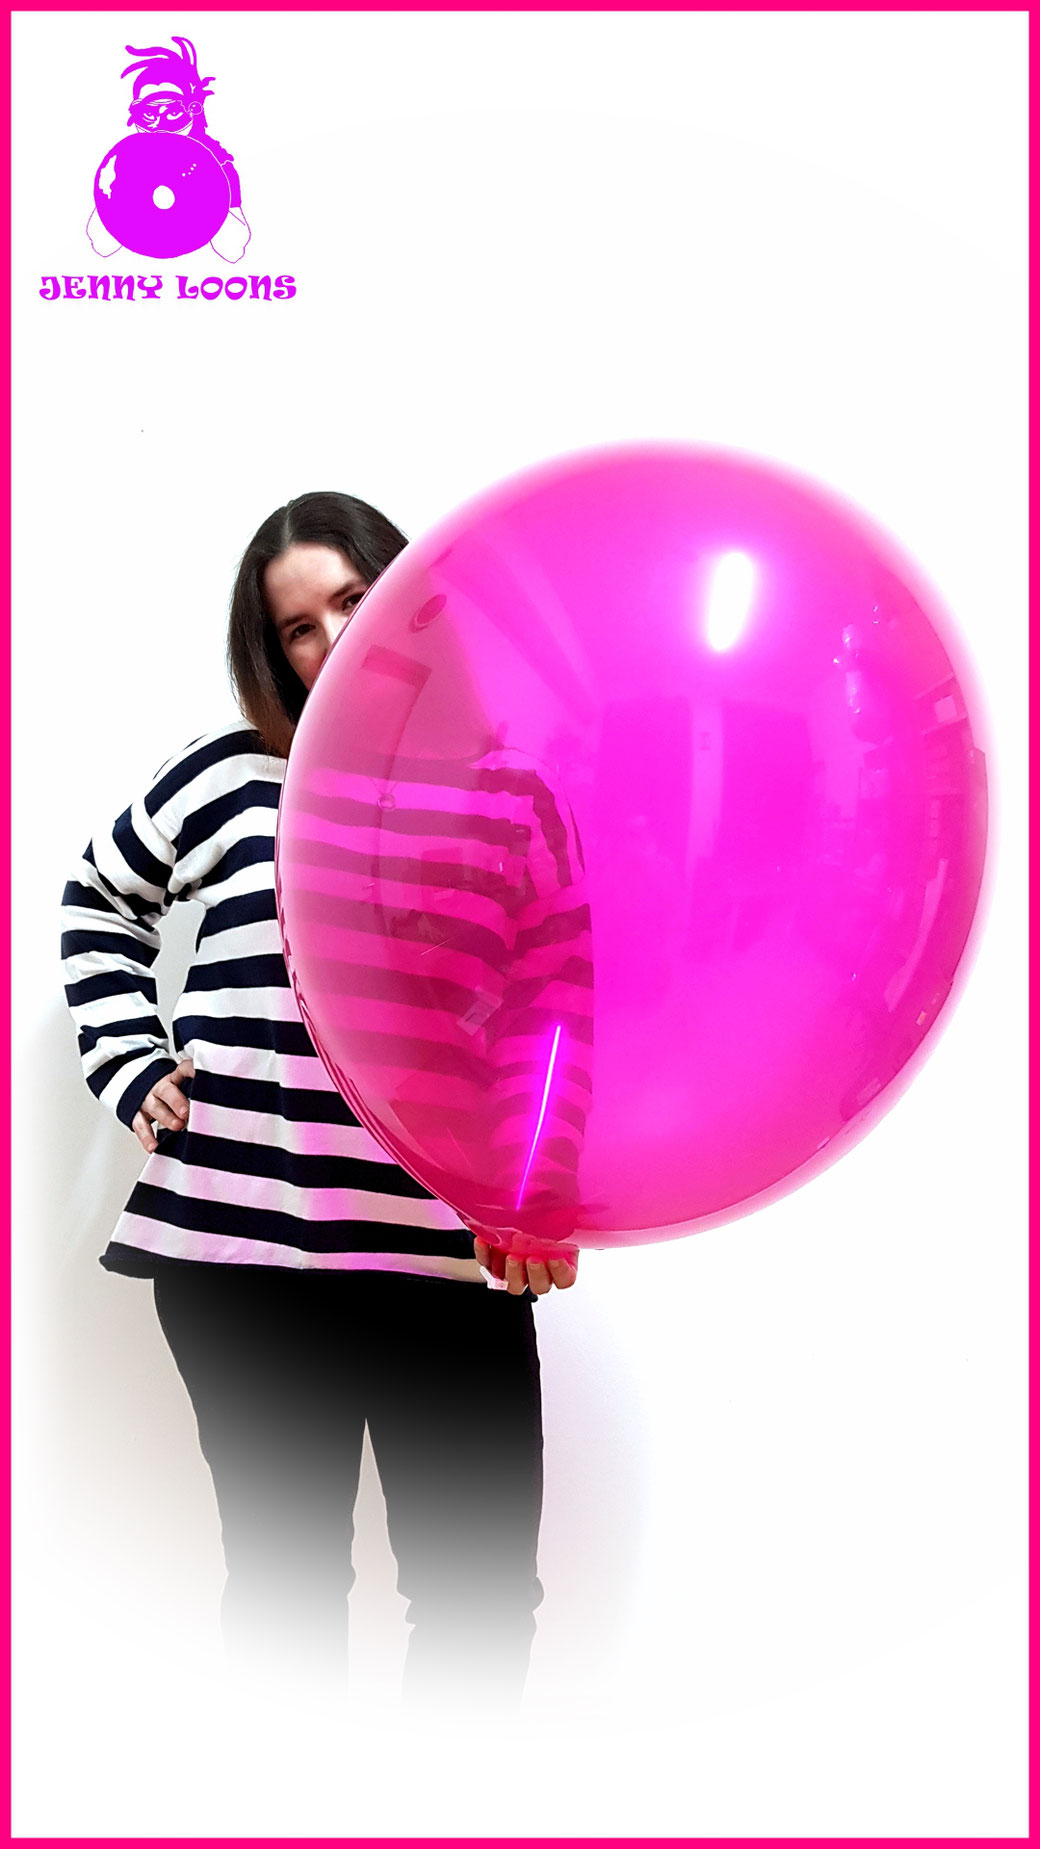 "TUFTEX TUF-TEX Luftballons Riesenballons Ballons Balloons 24inch 24"" 60cm Riese Giant Looner Kristall Crystal pink colors fun party Hameln Ballonshop Heliumballons"